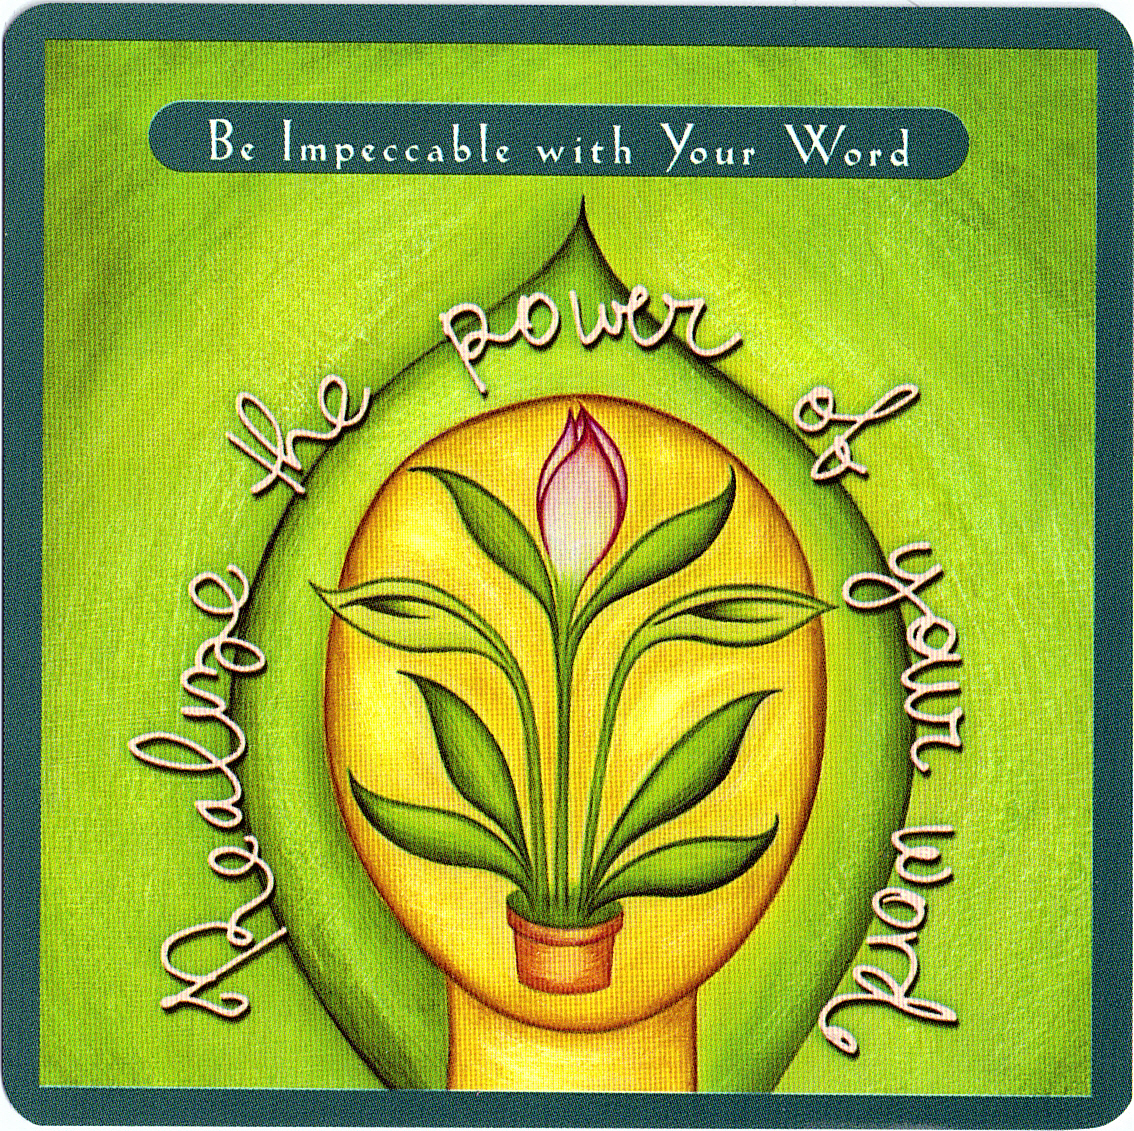 Four Agreements Quotes Don Miguel Ruiz The Four Agreements Quotes